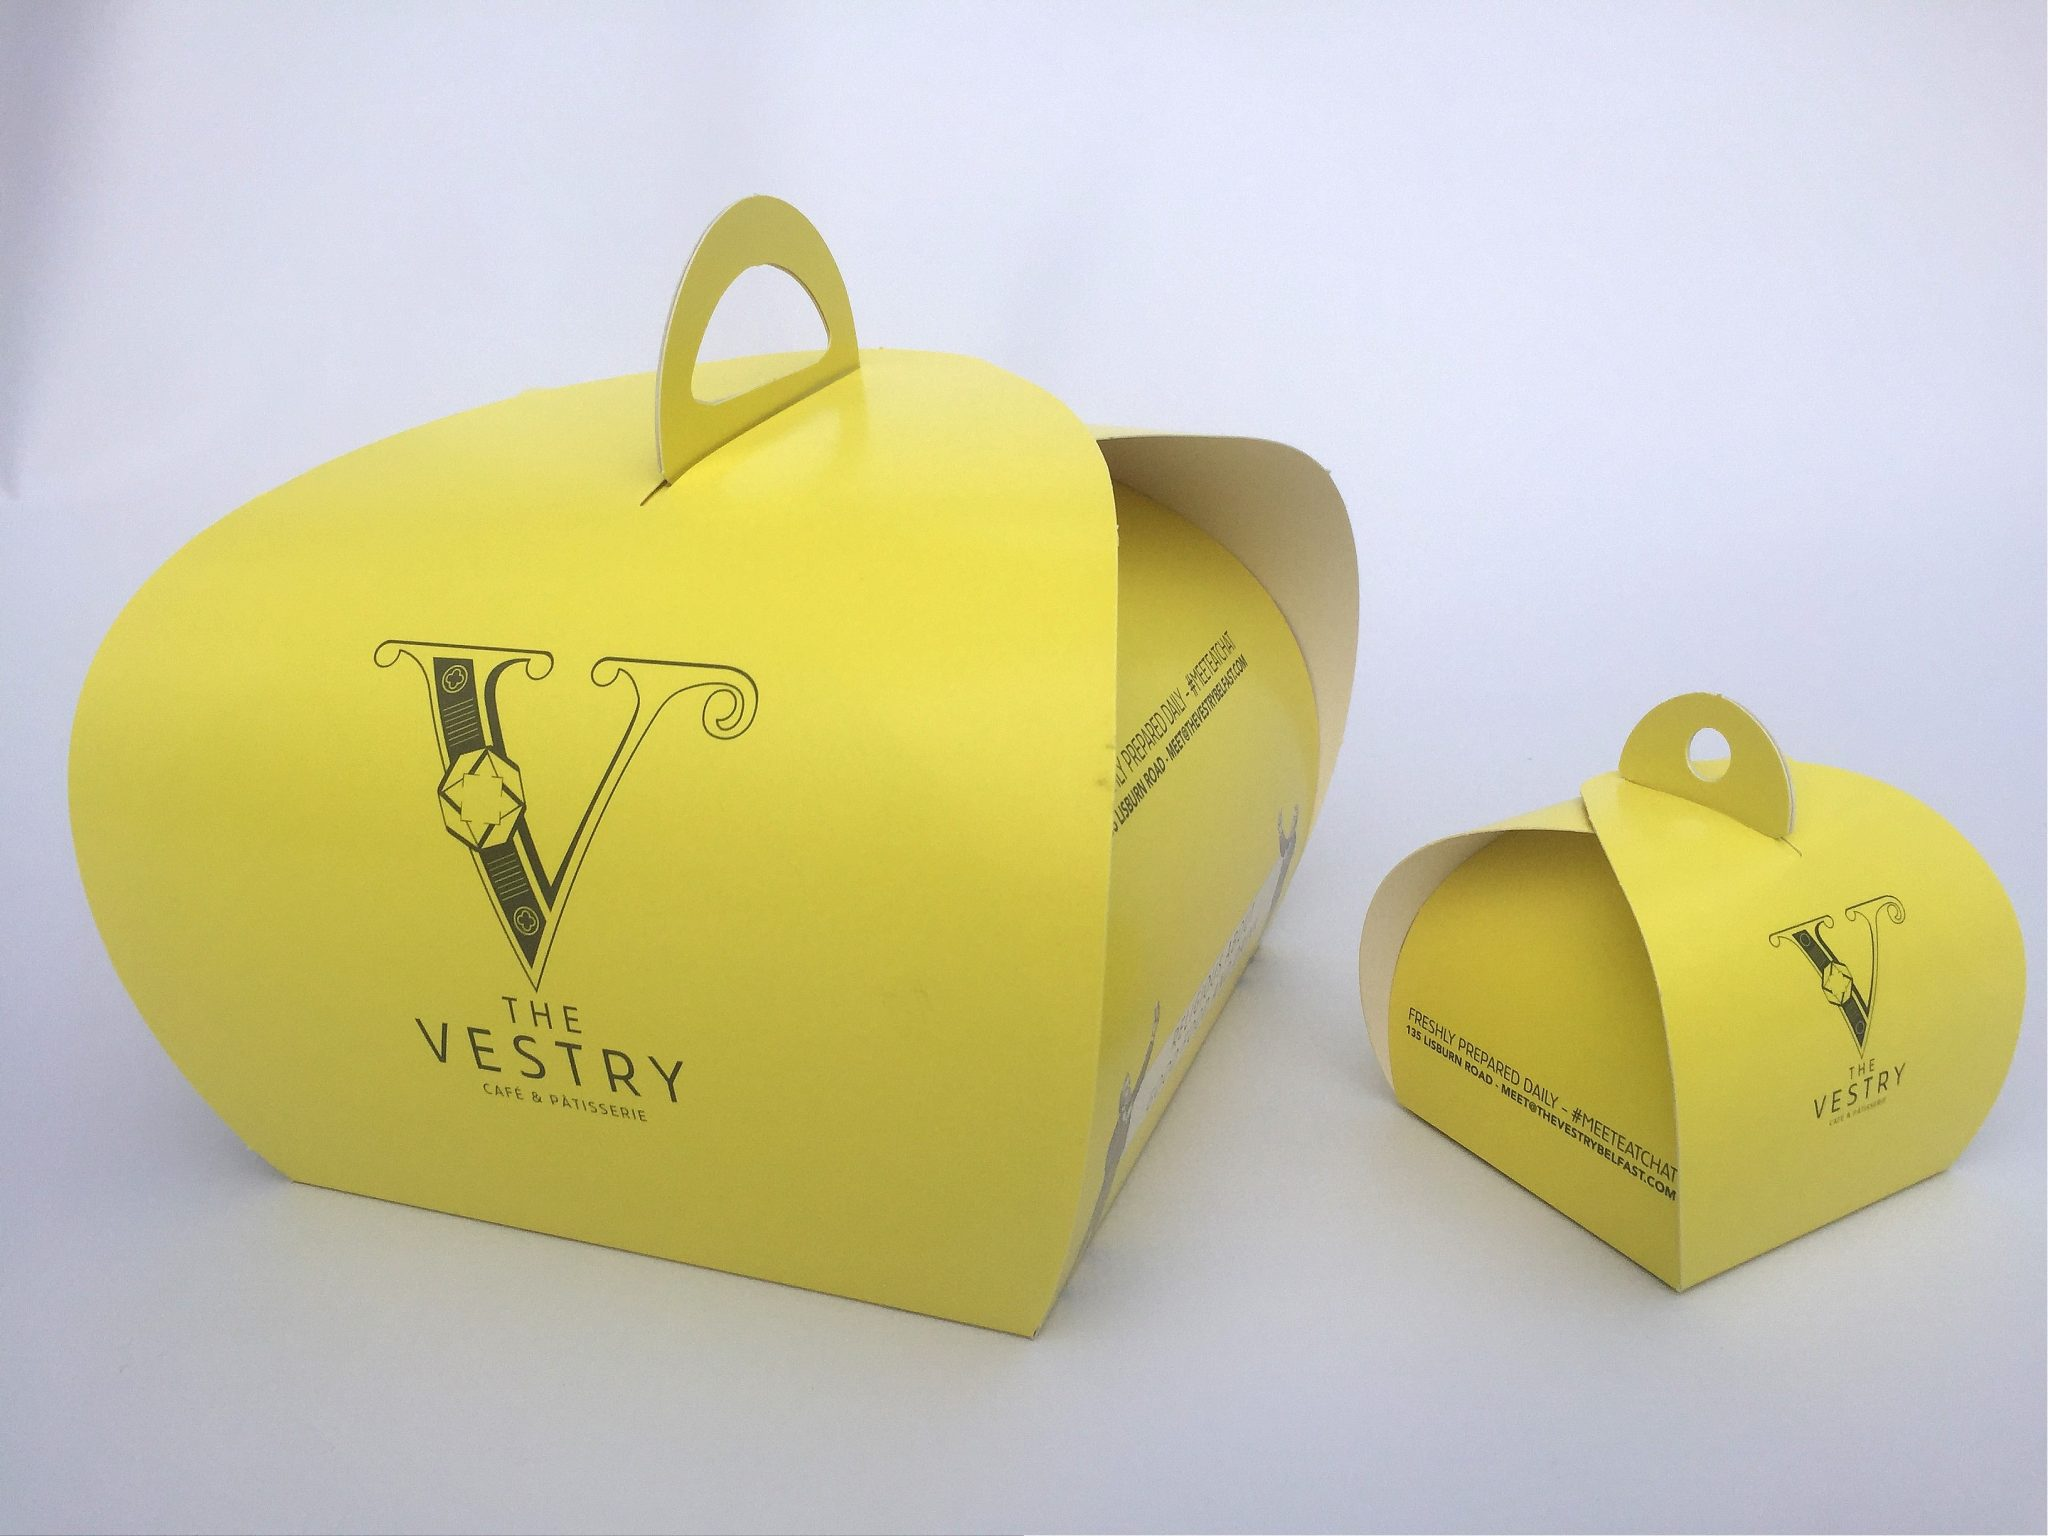 Bespoke Printed Single & 4 Pk Patisserie Boxes & Tags